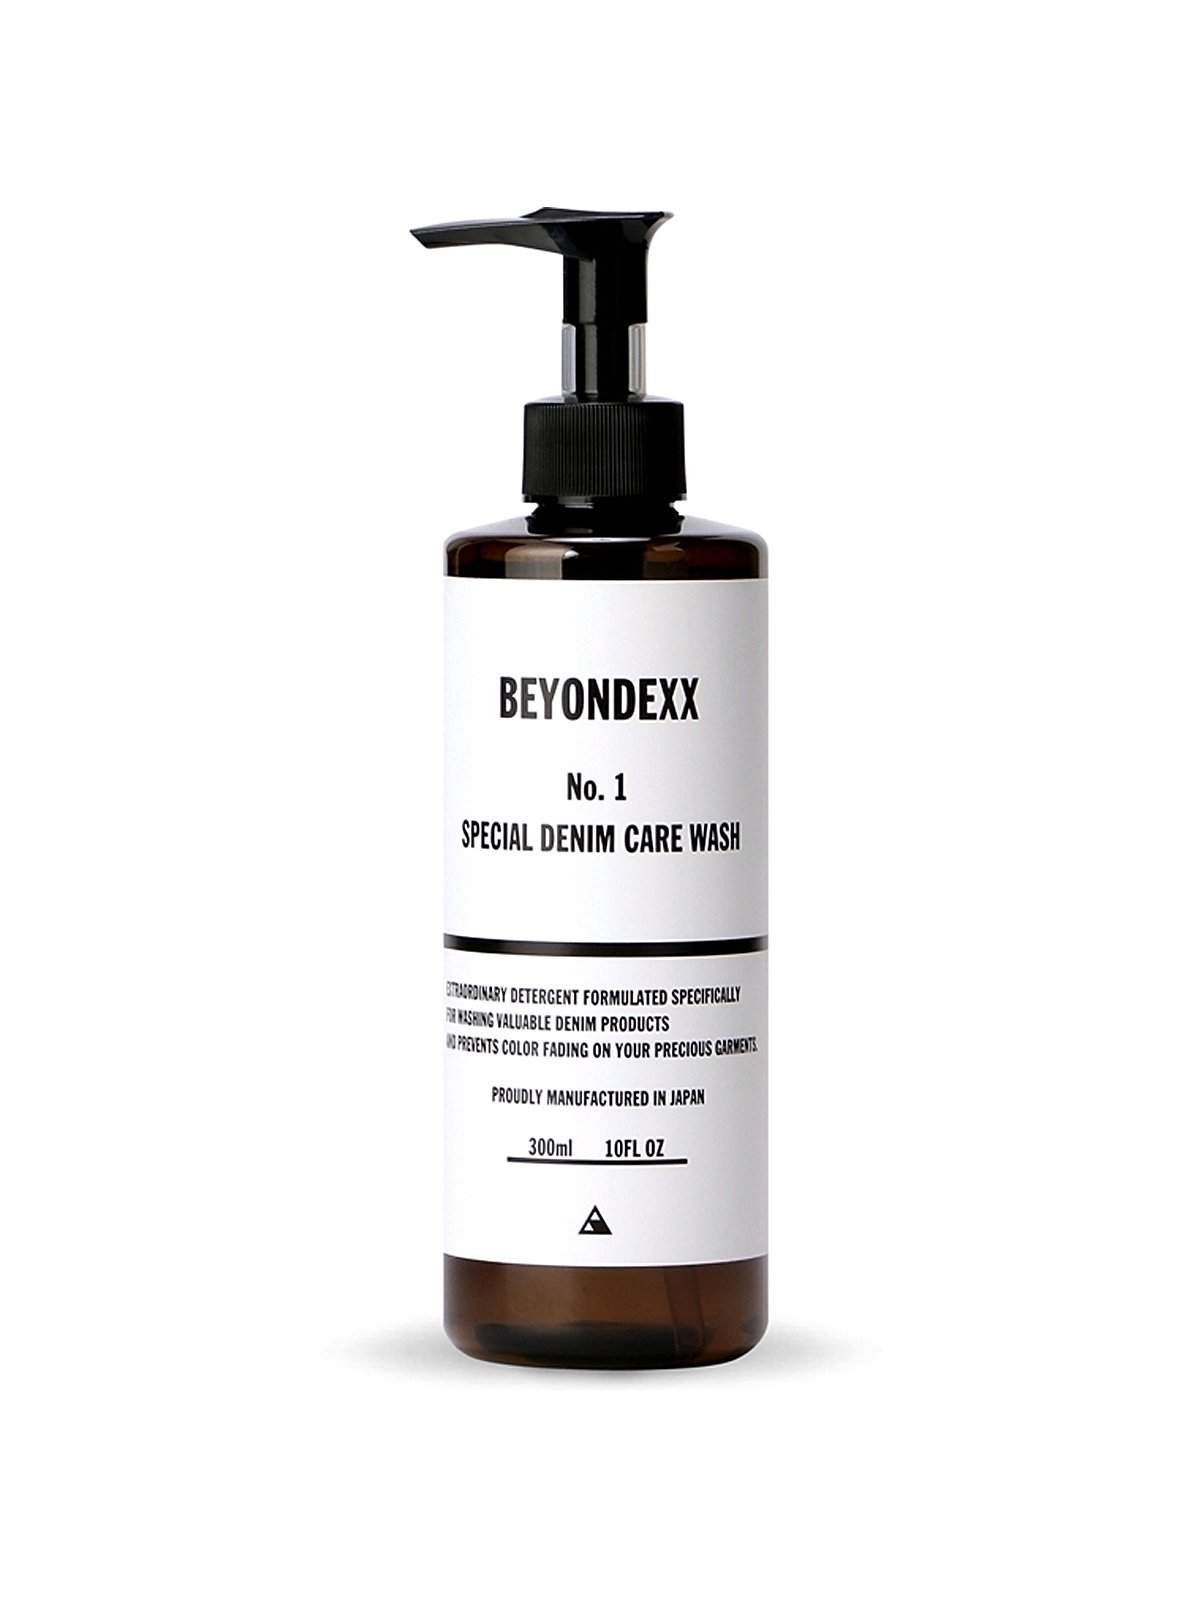 Beyondexx Special Denim Care 300ml - MORE by Morello Indonesia